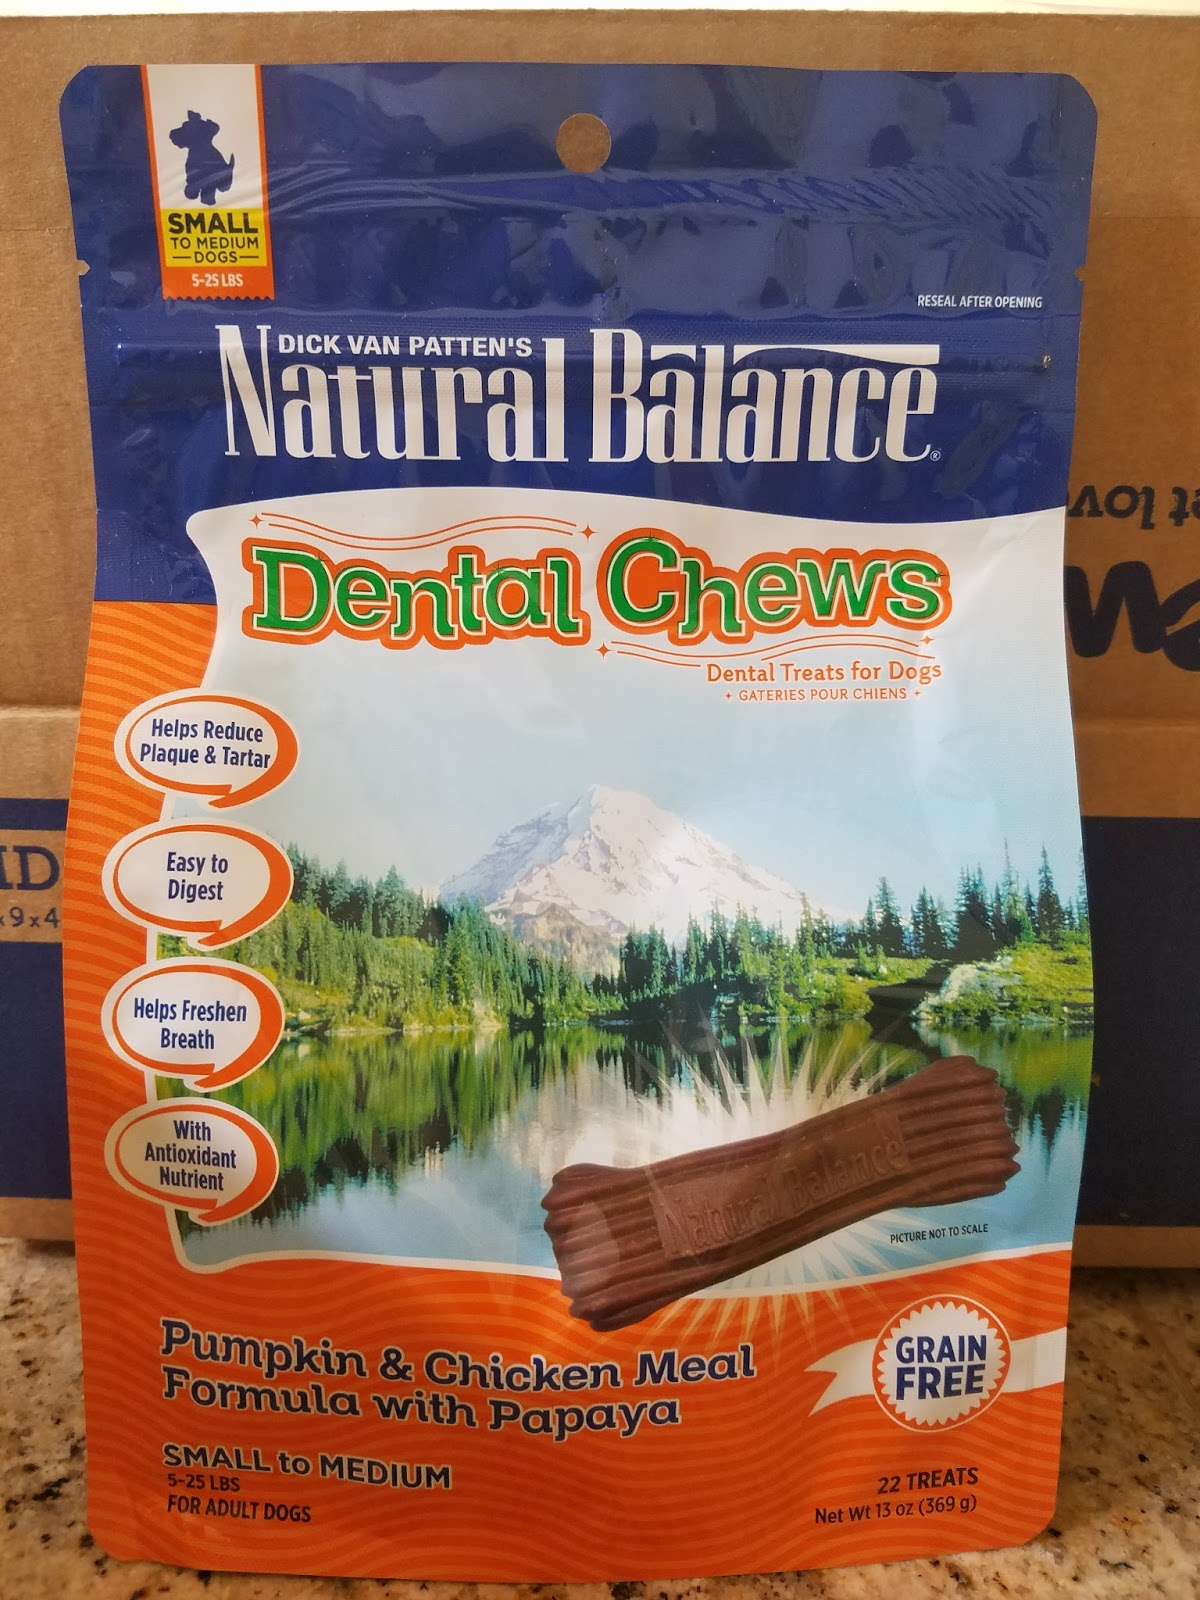 Natural Balance Dog Food Petsmart Promo Code